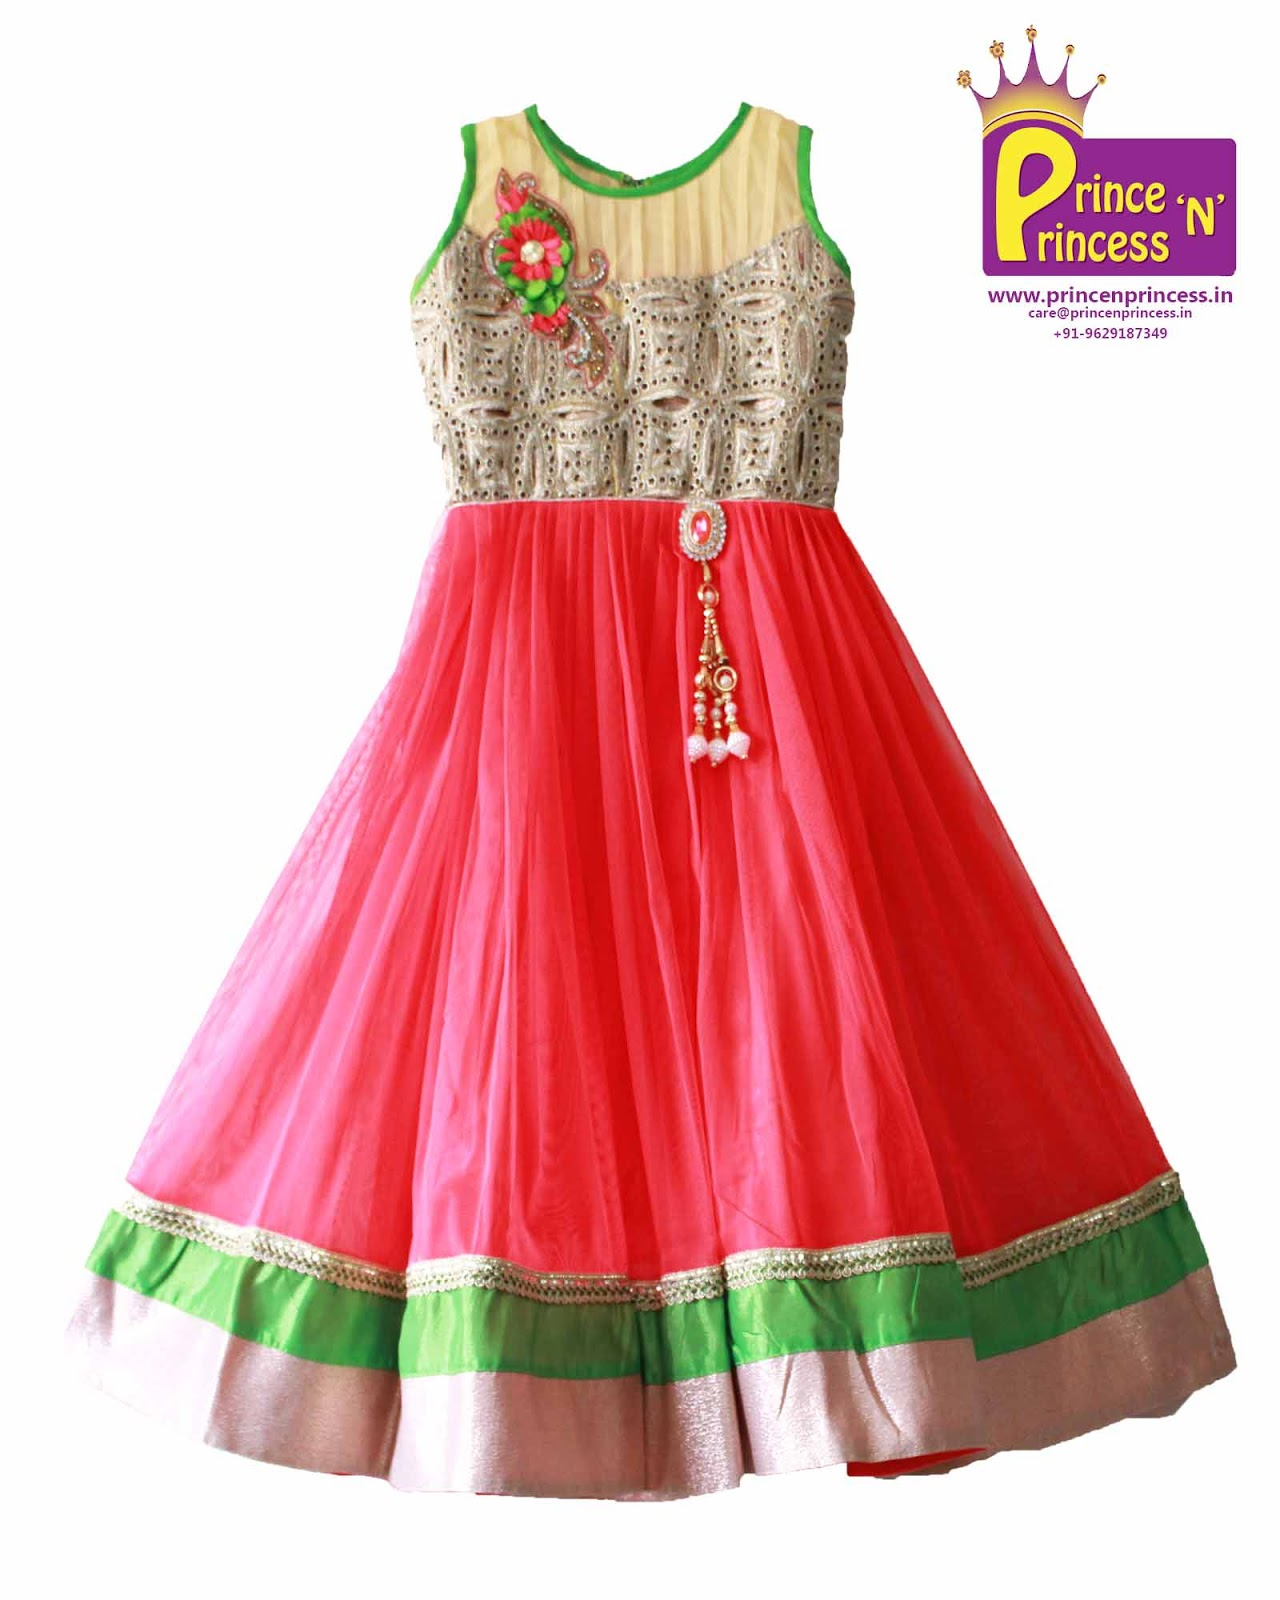 Kids Party Gown – www.princenprincess.in